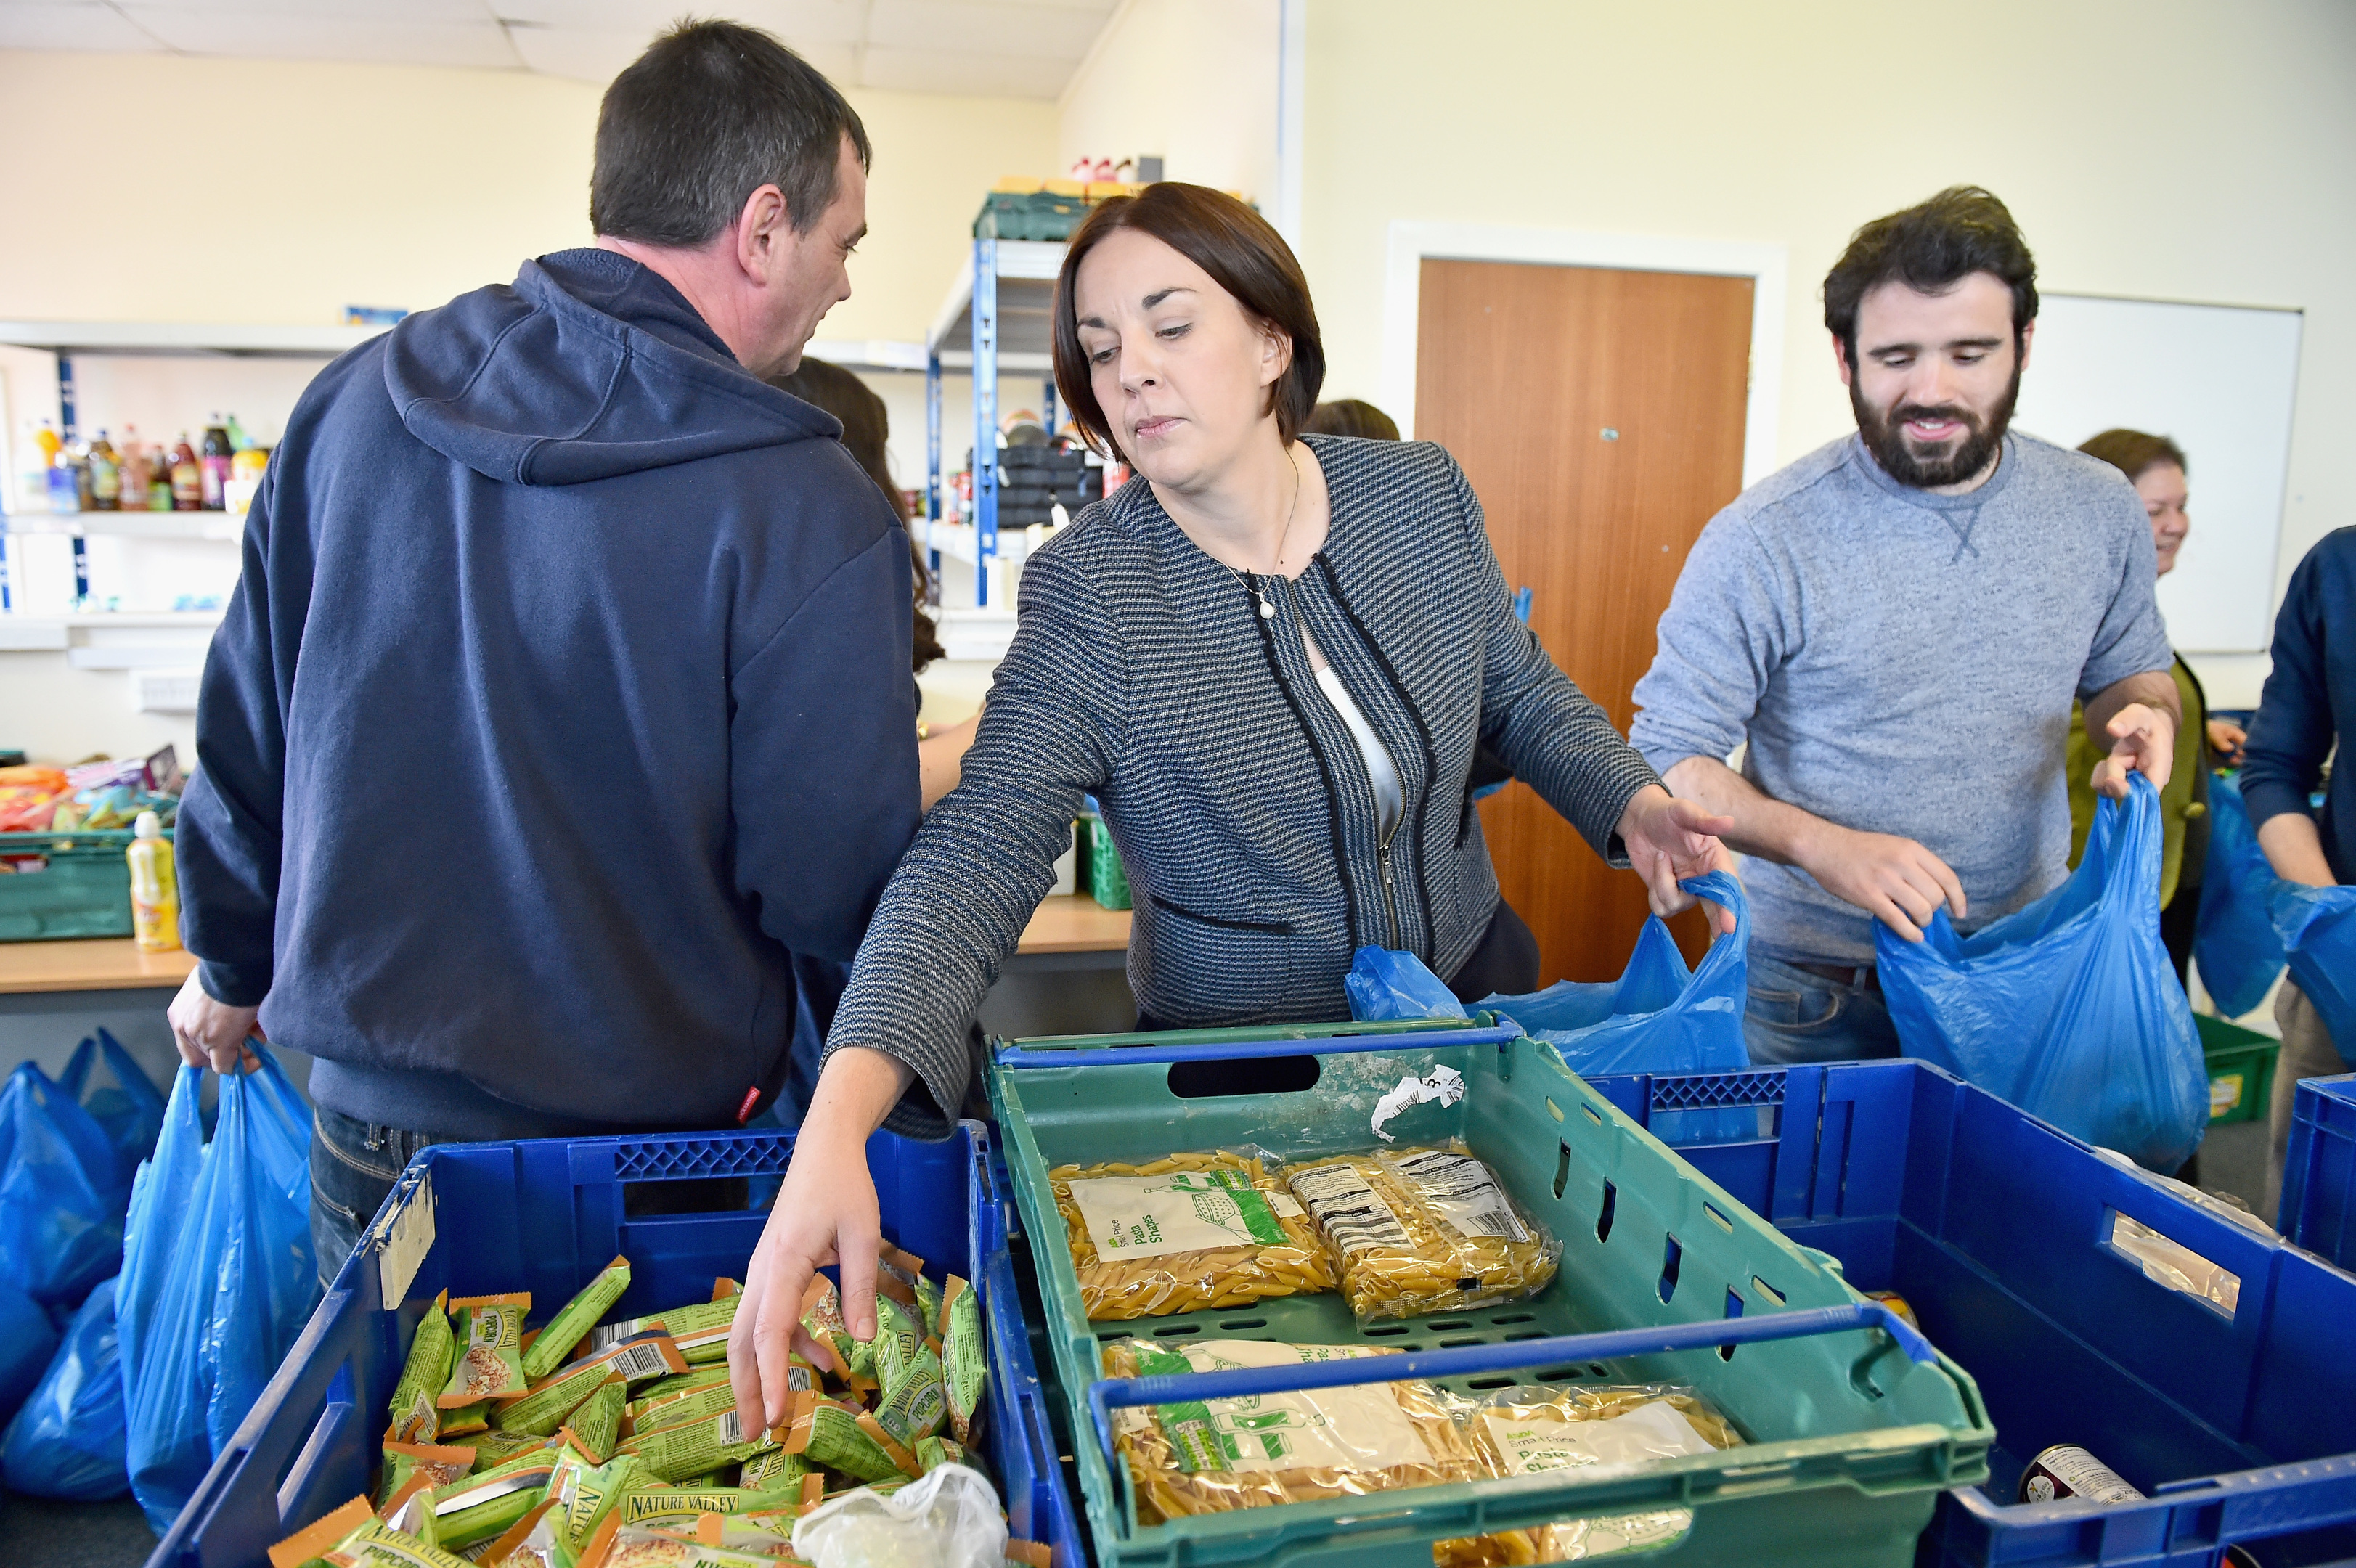 Kezia Dugdale helps staff and volunteers pack food bags for distribution at a community food share  in Dumbarton.